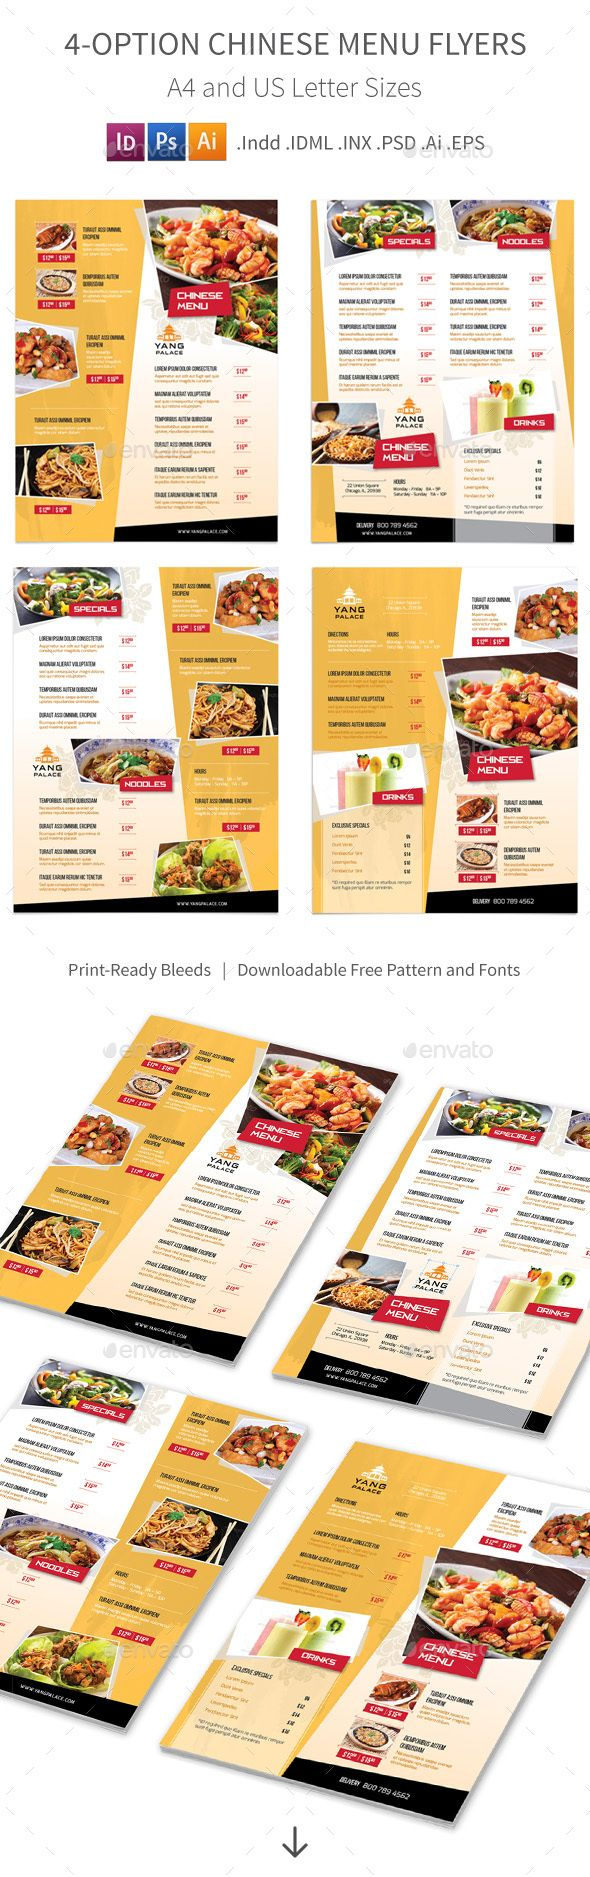 4 options chinese restaurant menu flyers template psd vector eps indesign indd ai illustrator. Black Bedroom Furniture Sets. Home Design Ideas